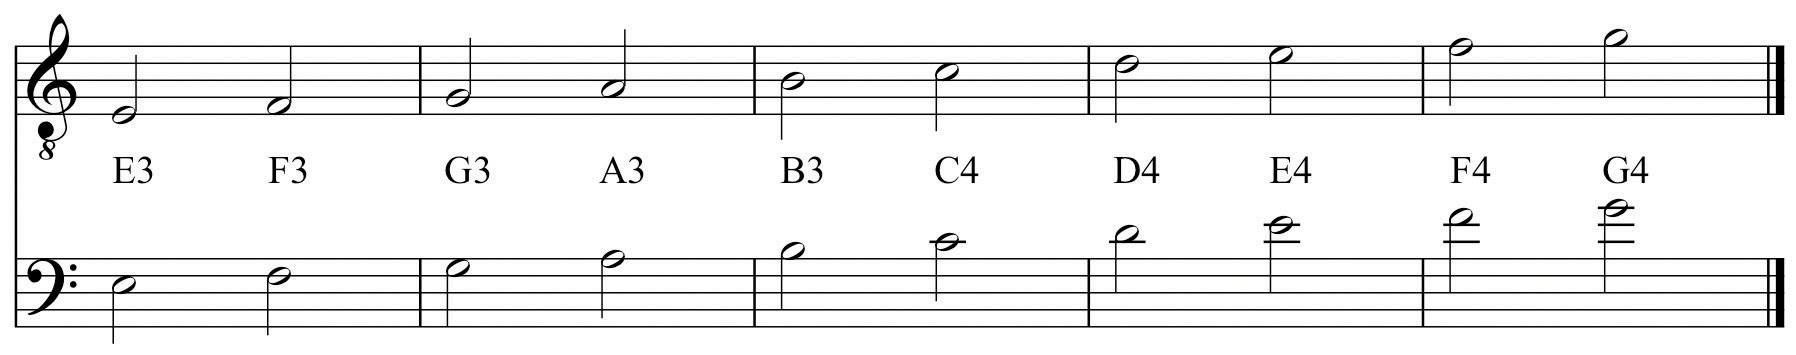 Letter Name And Octave Designation